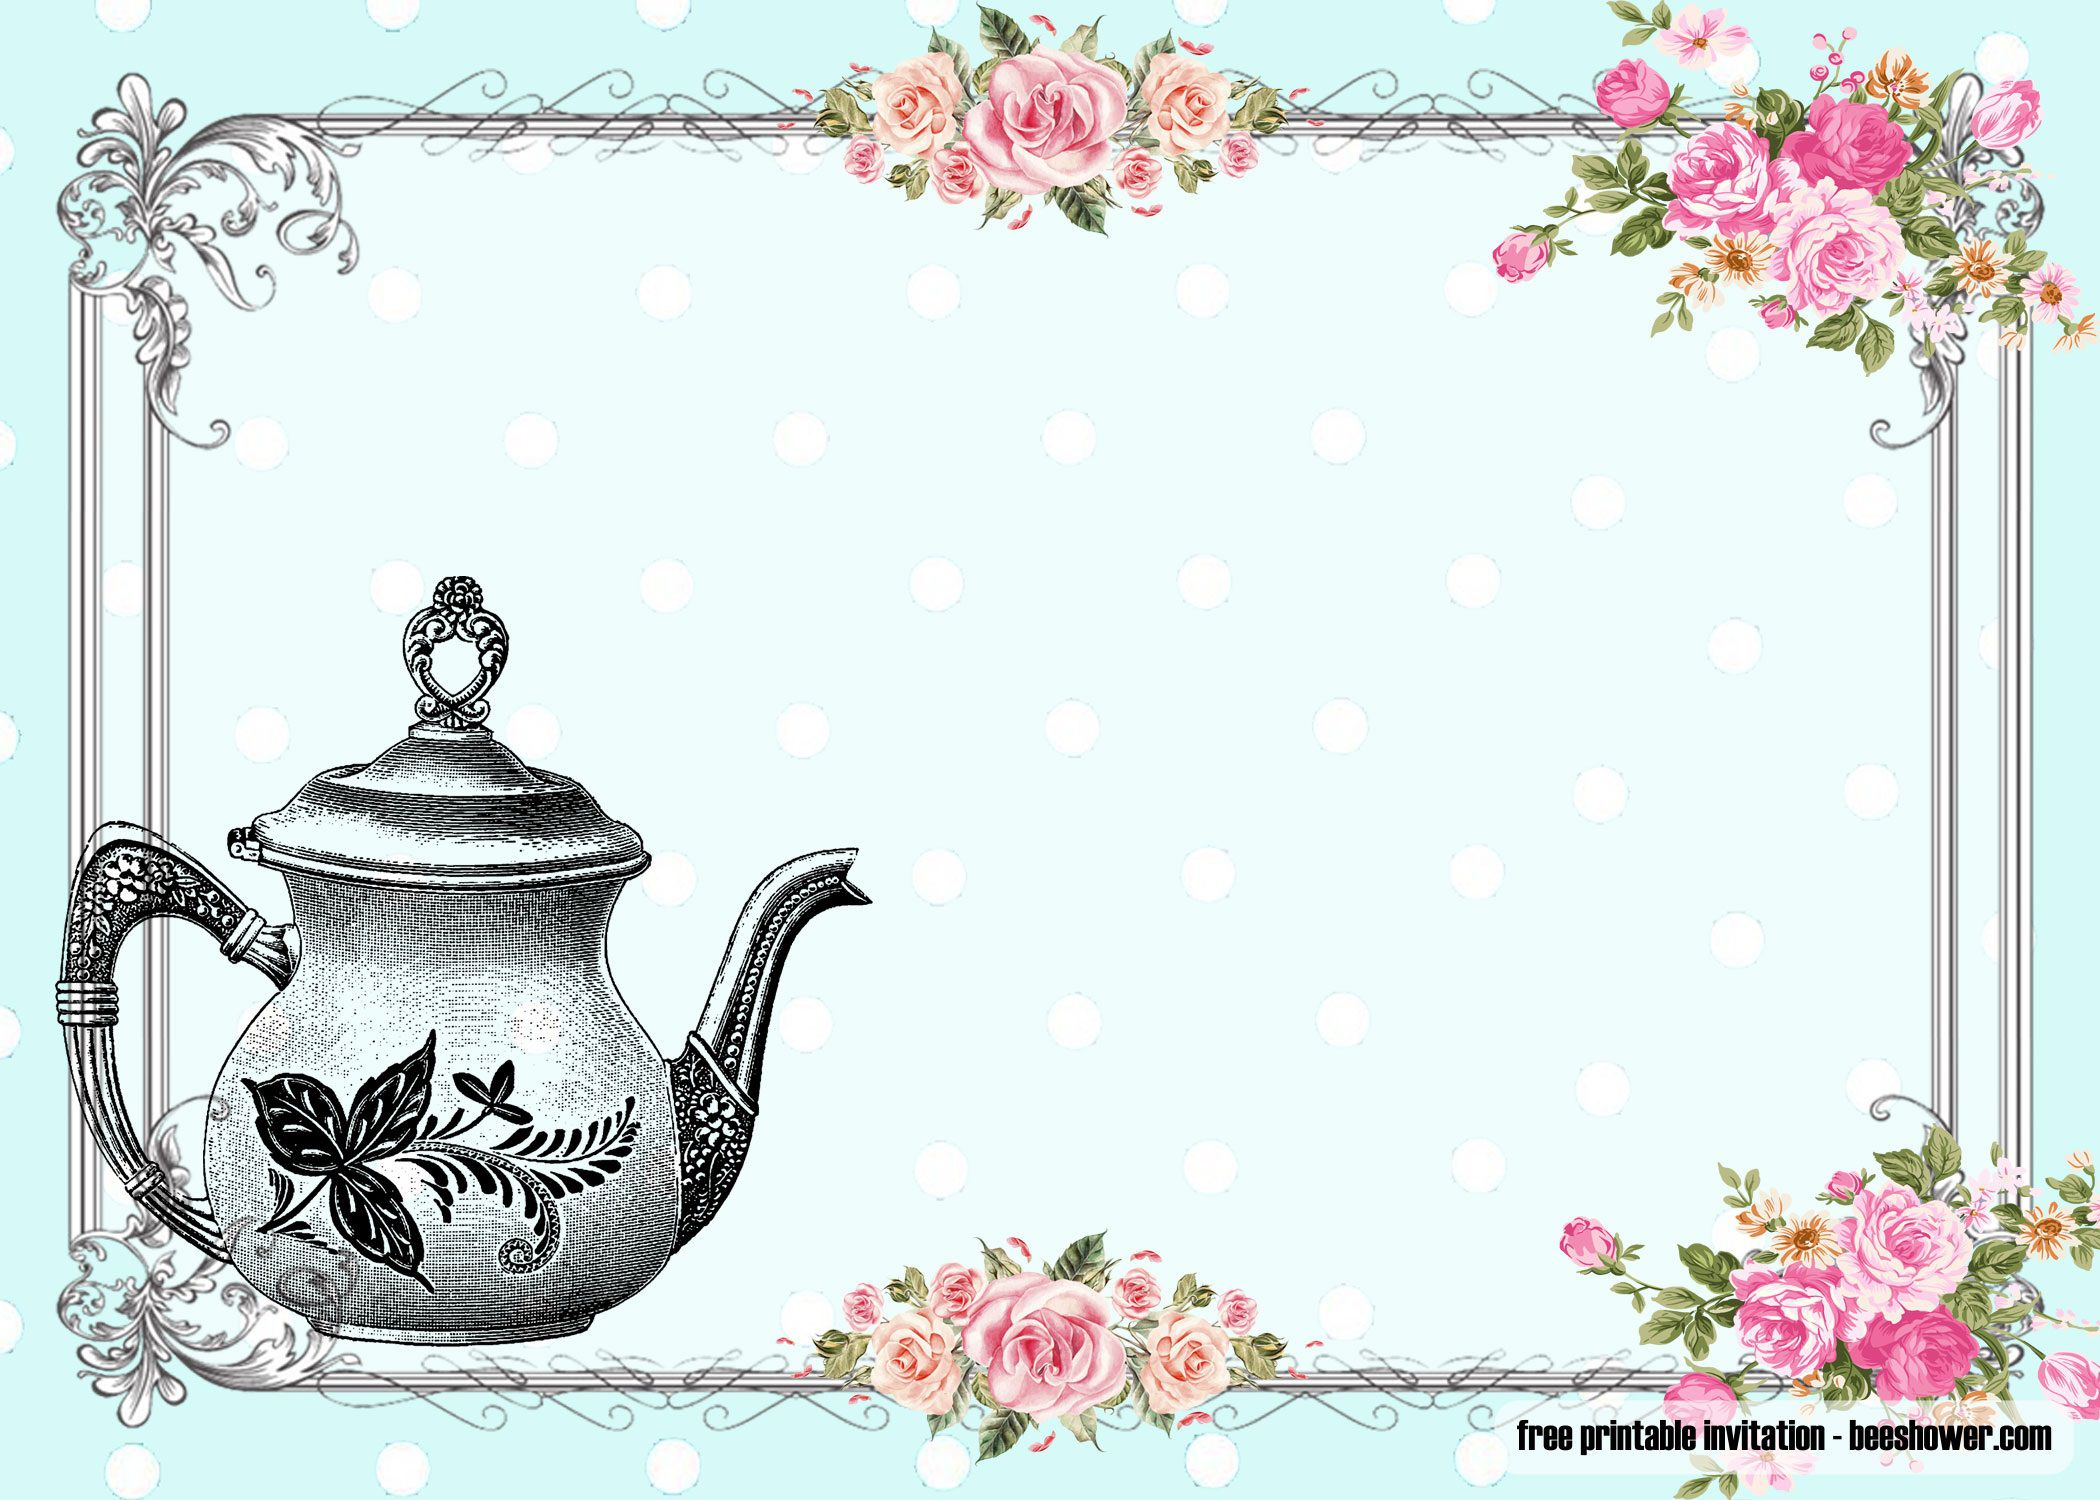 010 Awful Tea Party Invitation Template Idea  Card Victorian Wording For Bridal ShowerFull